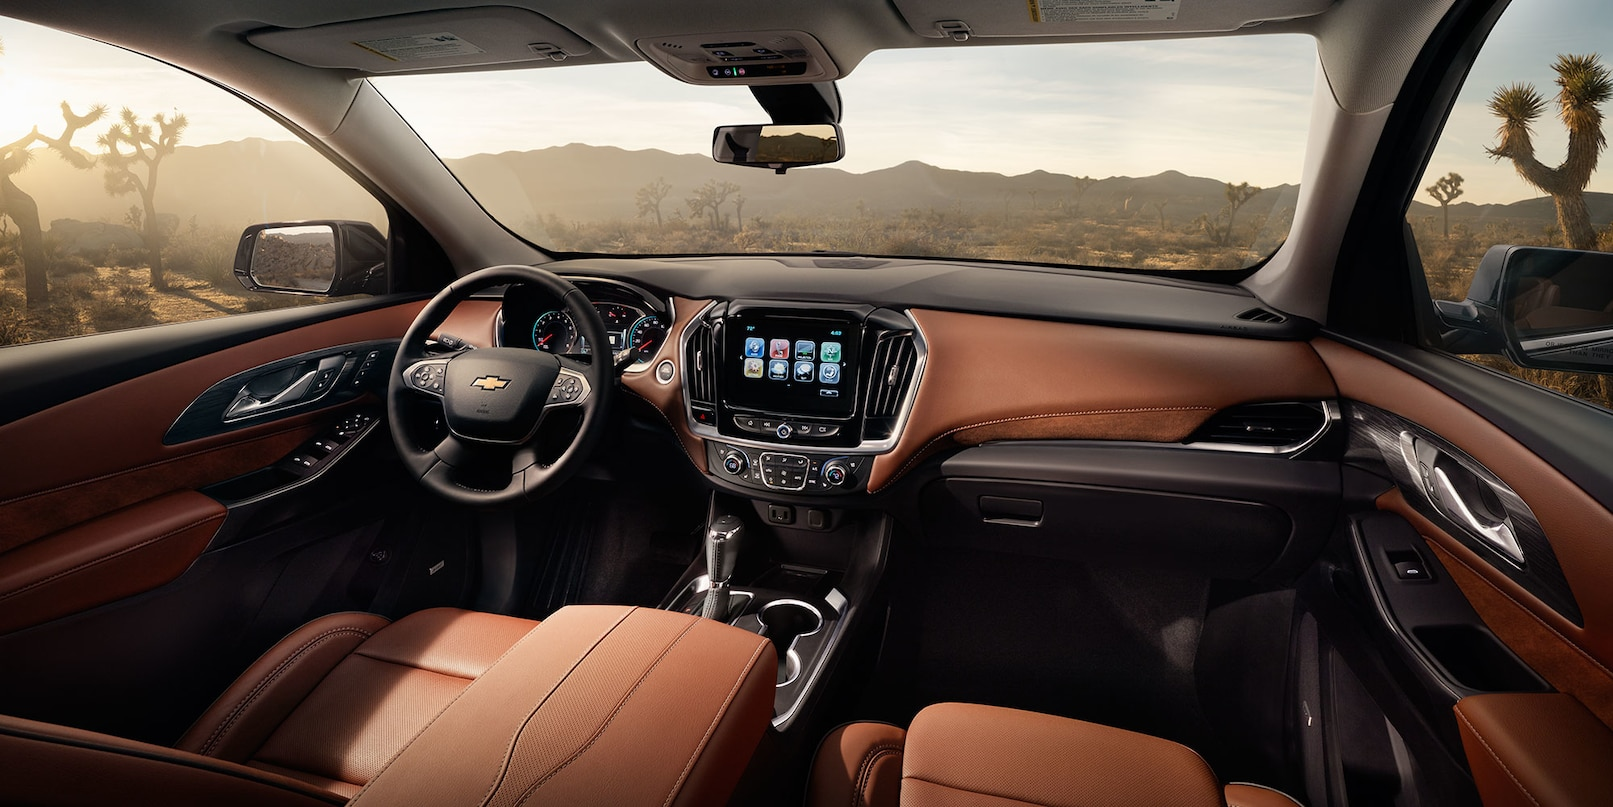 Stunning Interior of the Chevy Traverse